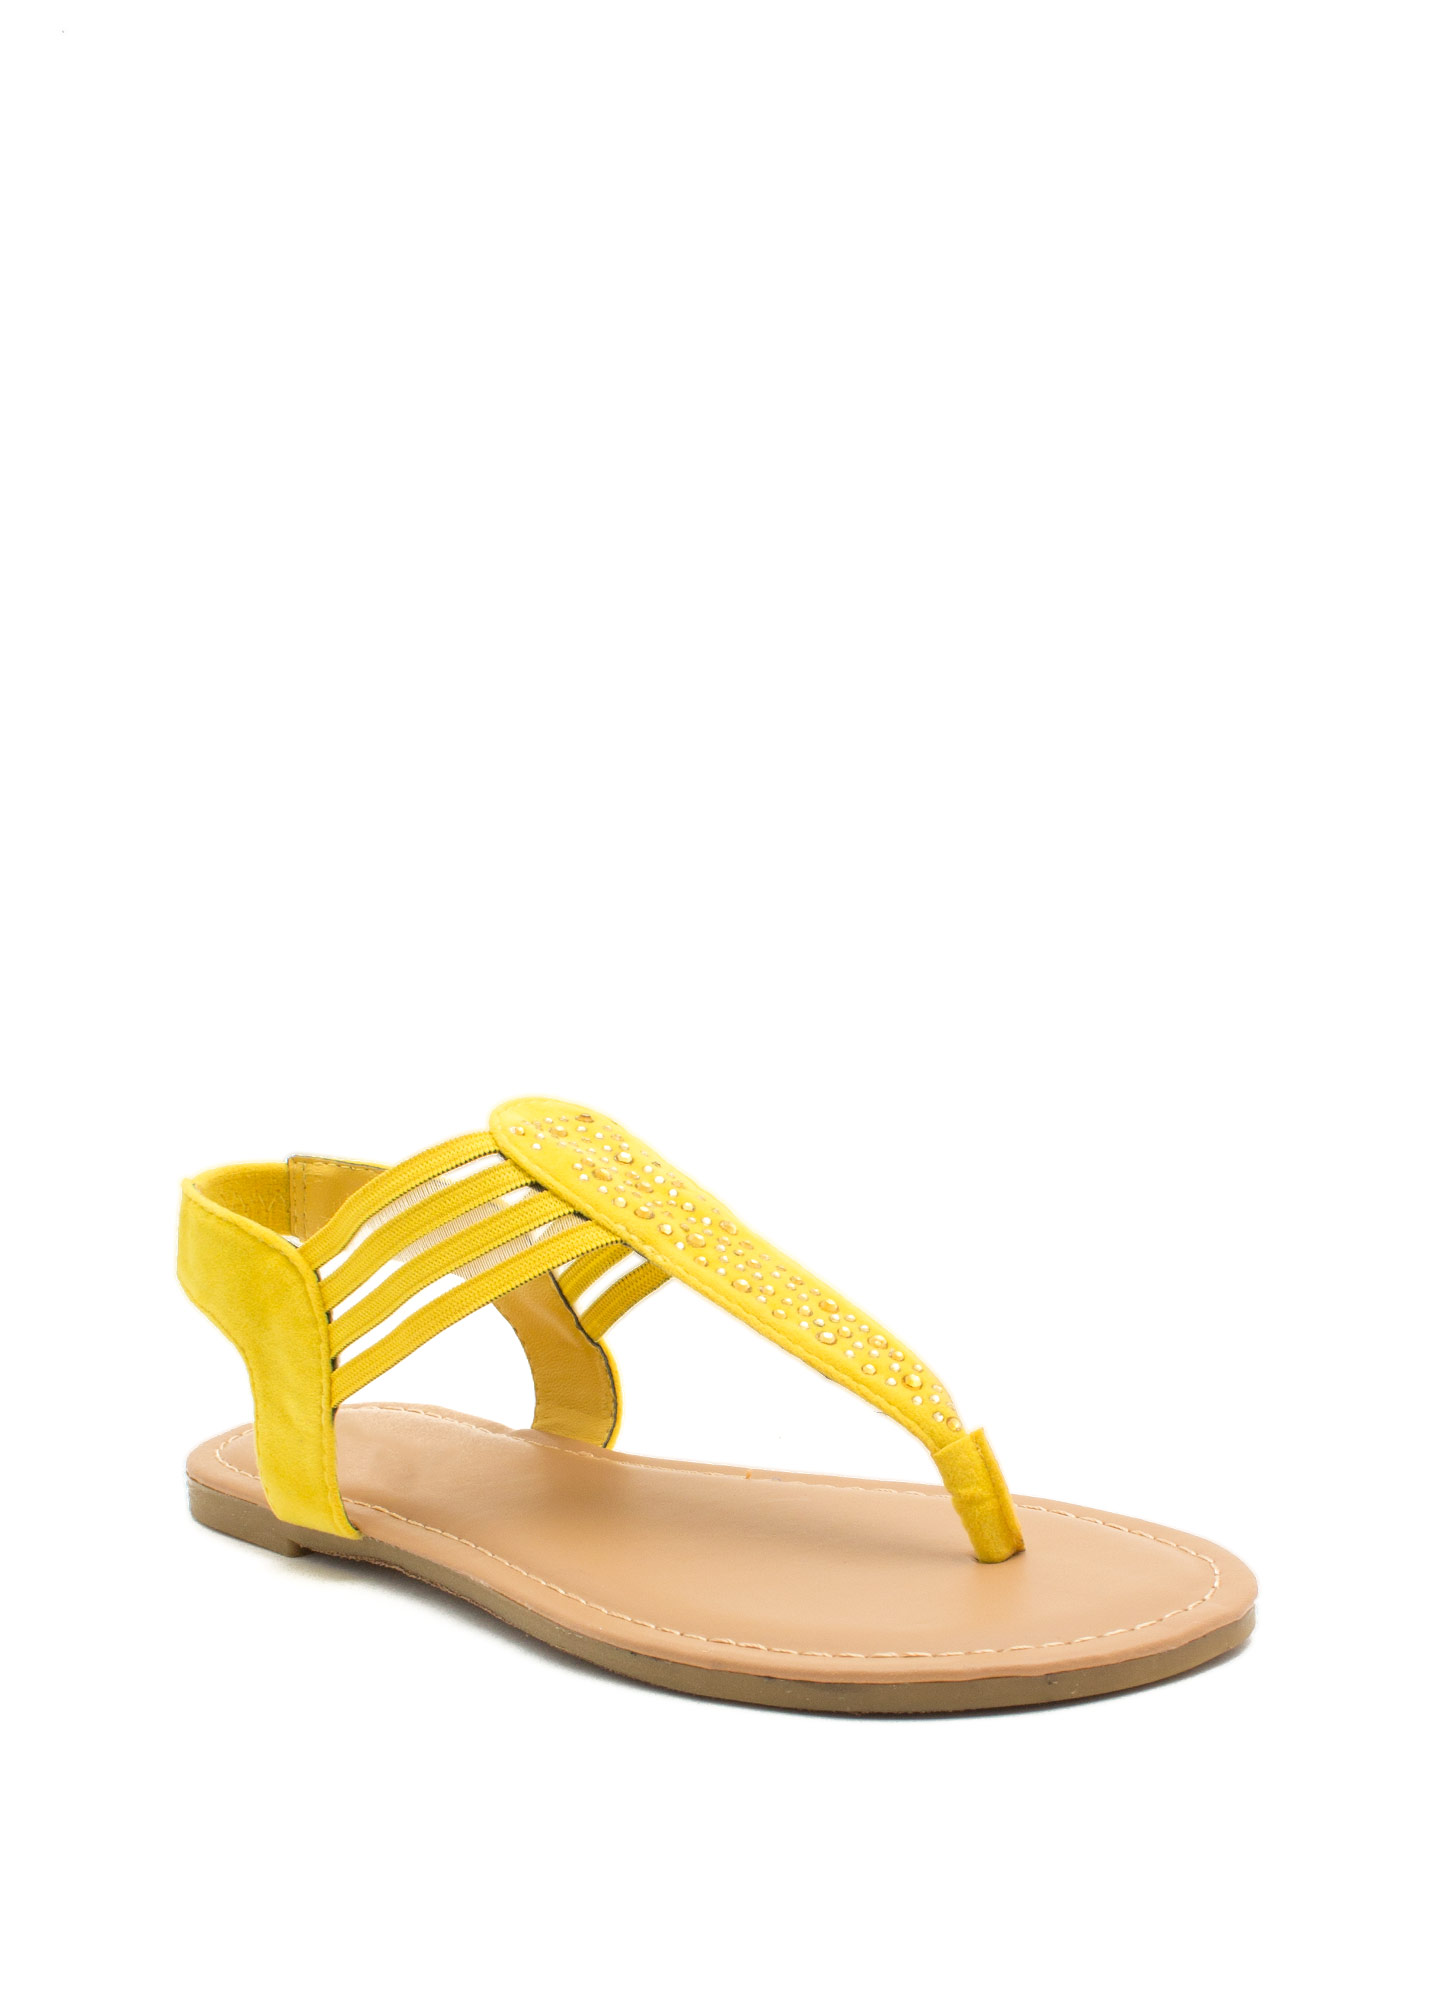 Mesh 'N Shine Thong Sandals YELLOW